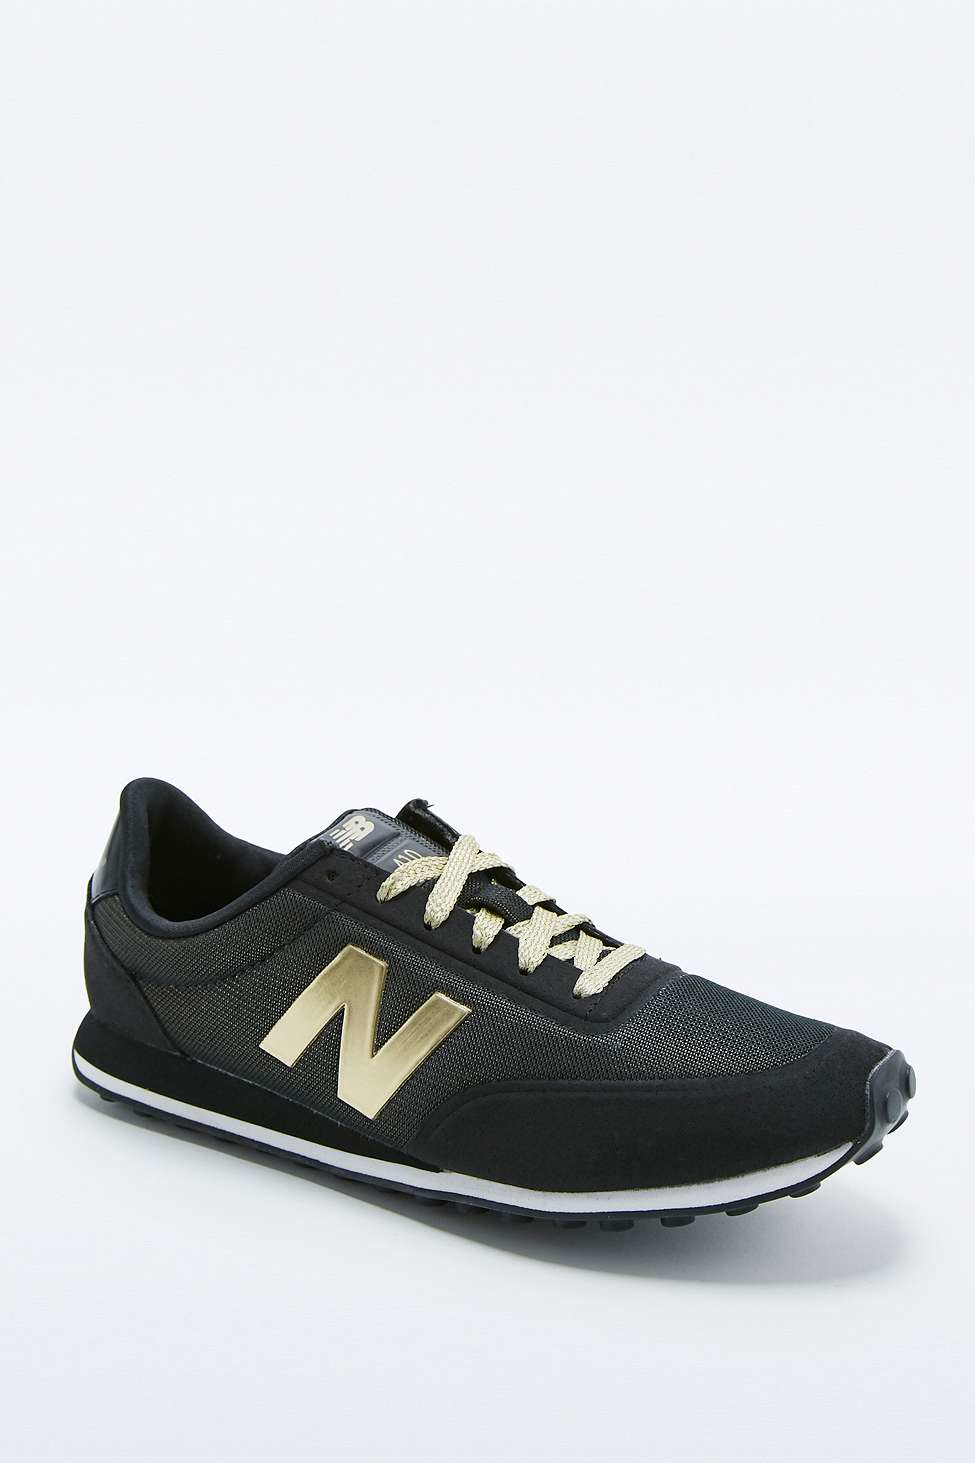 new balance 410 black and gold